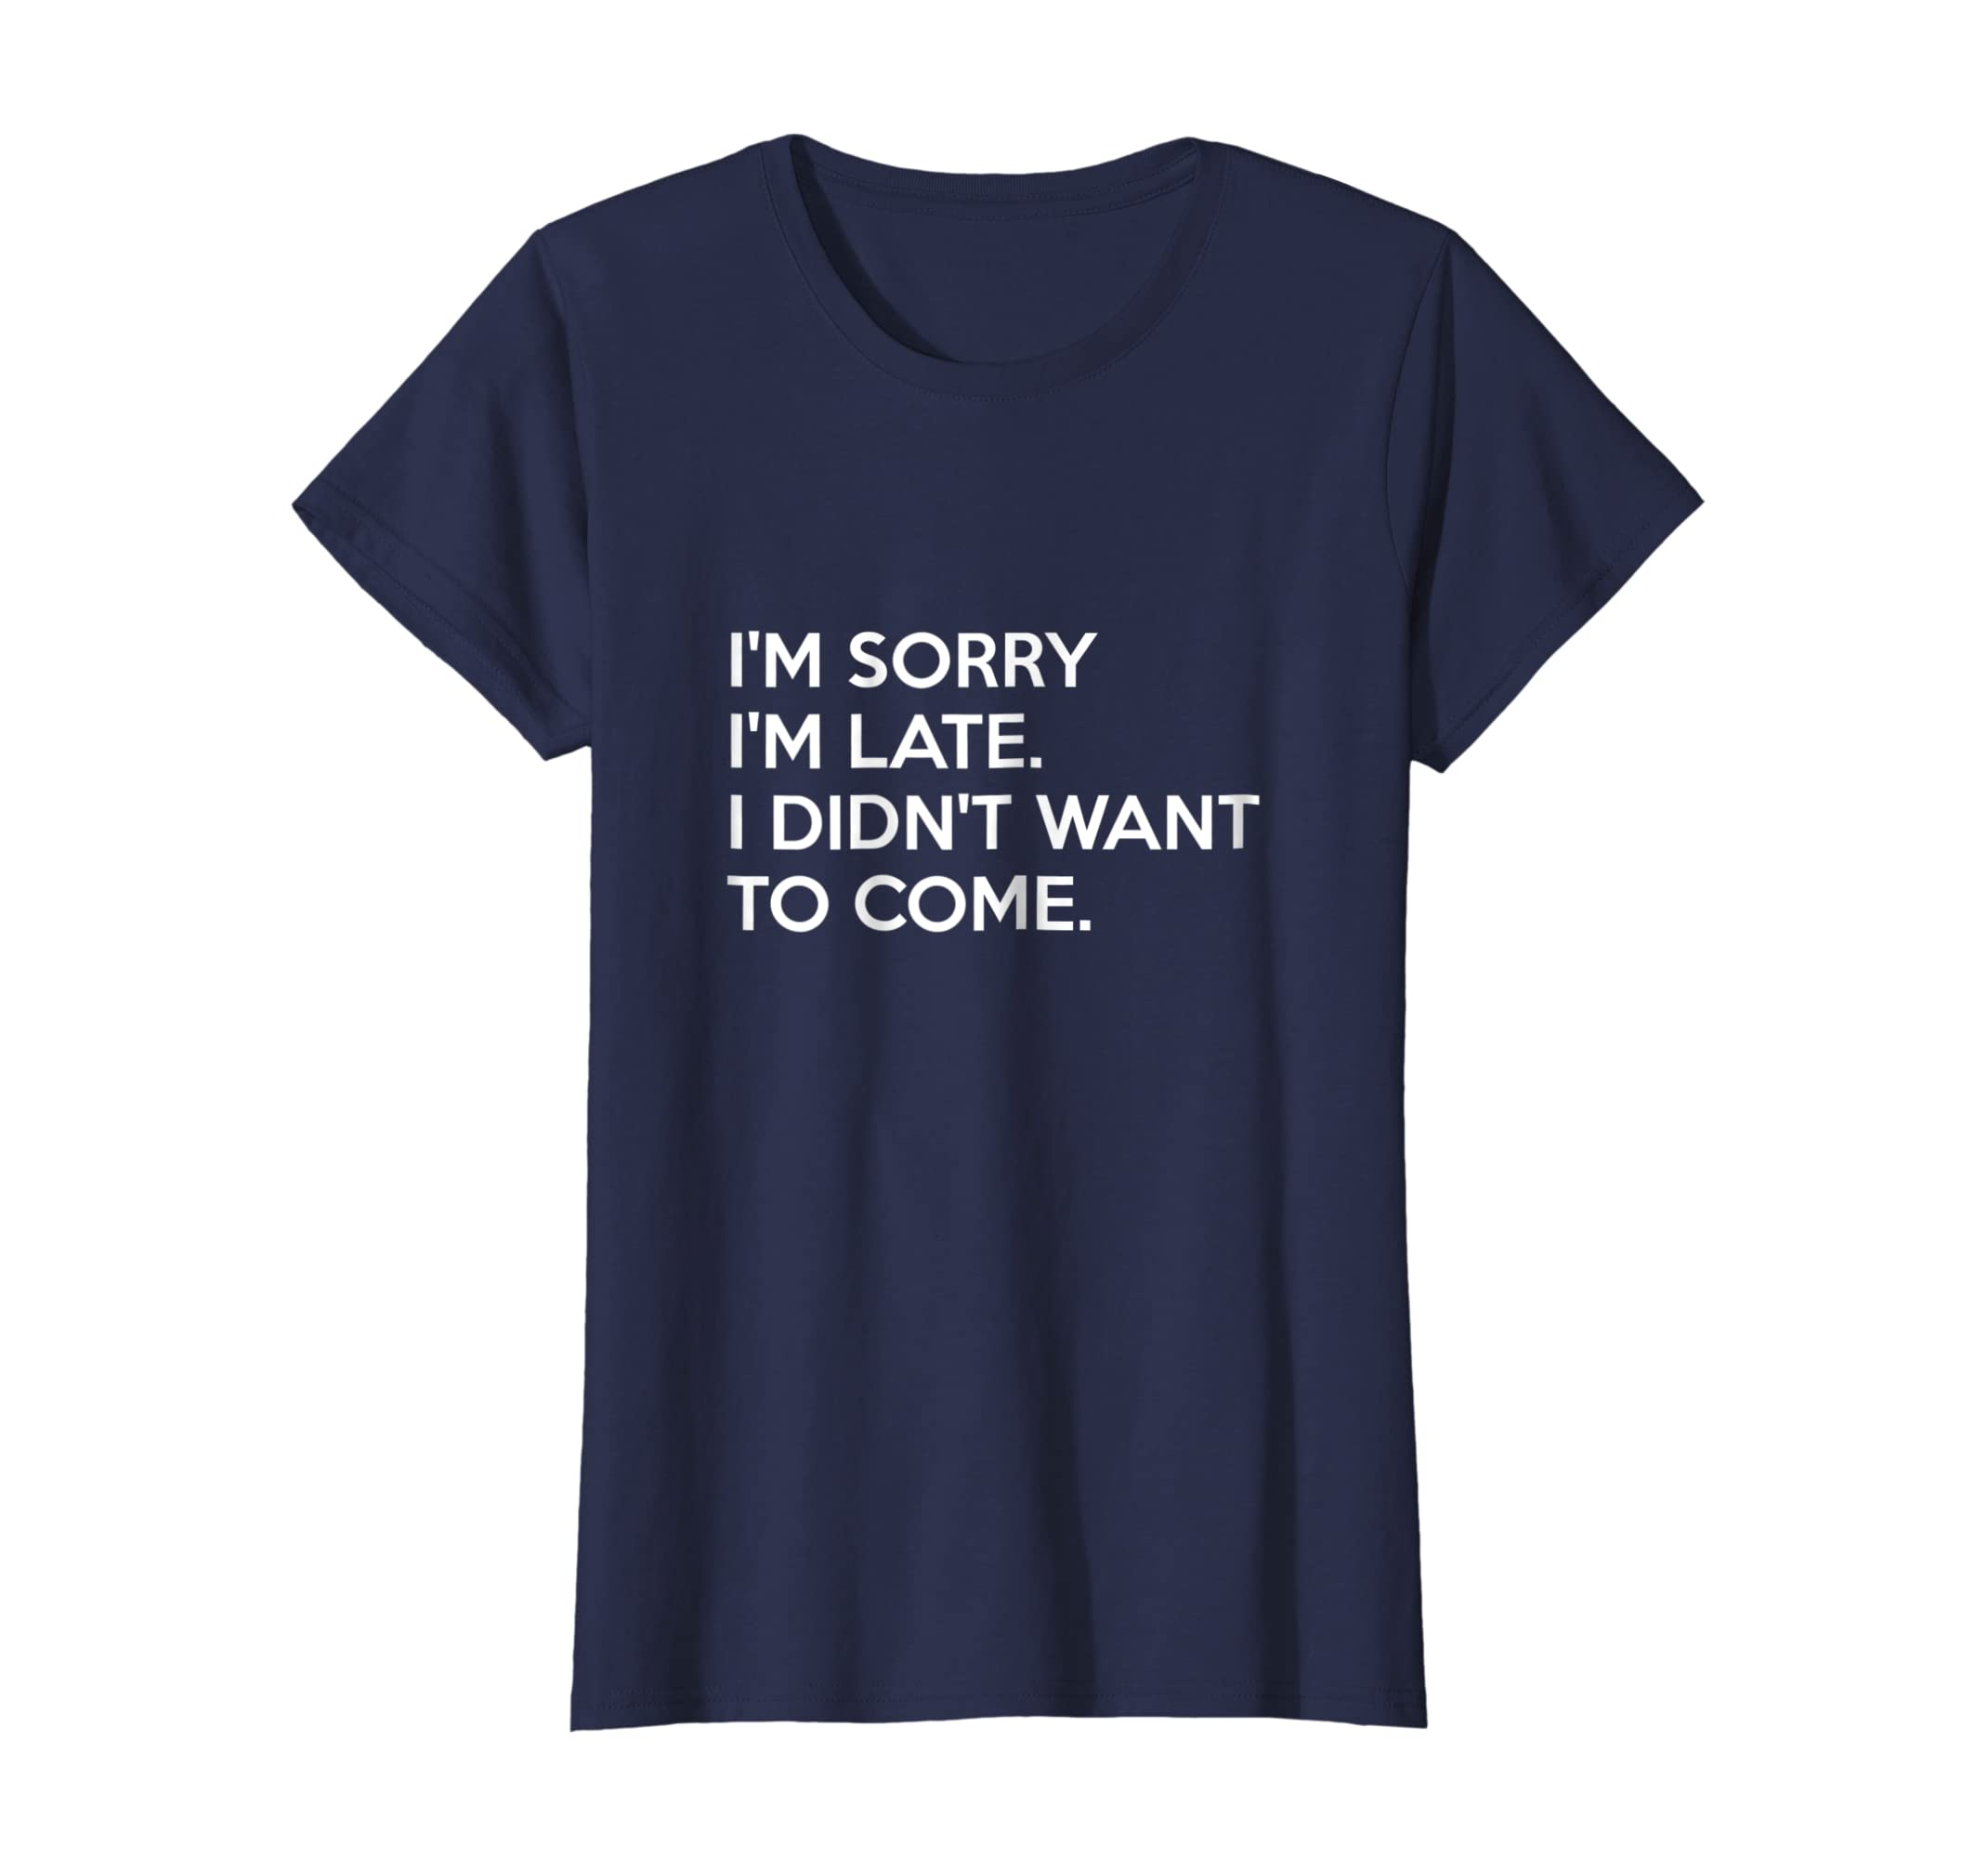 8d84f792 Amazon.com: I'm Sorry I'm Late I Didn't Want To Come T-Shirt: Clothing